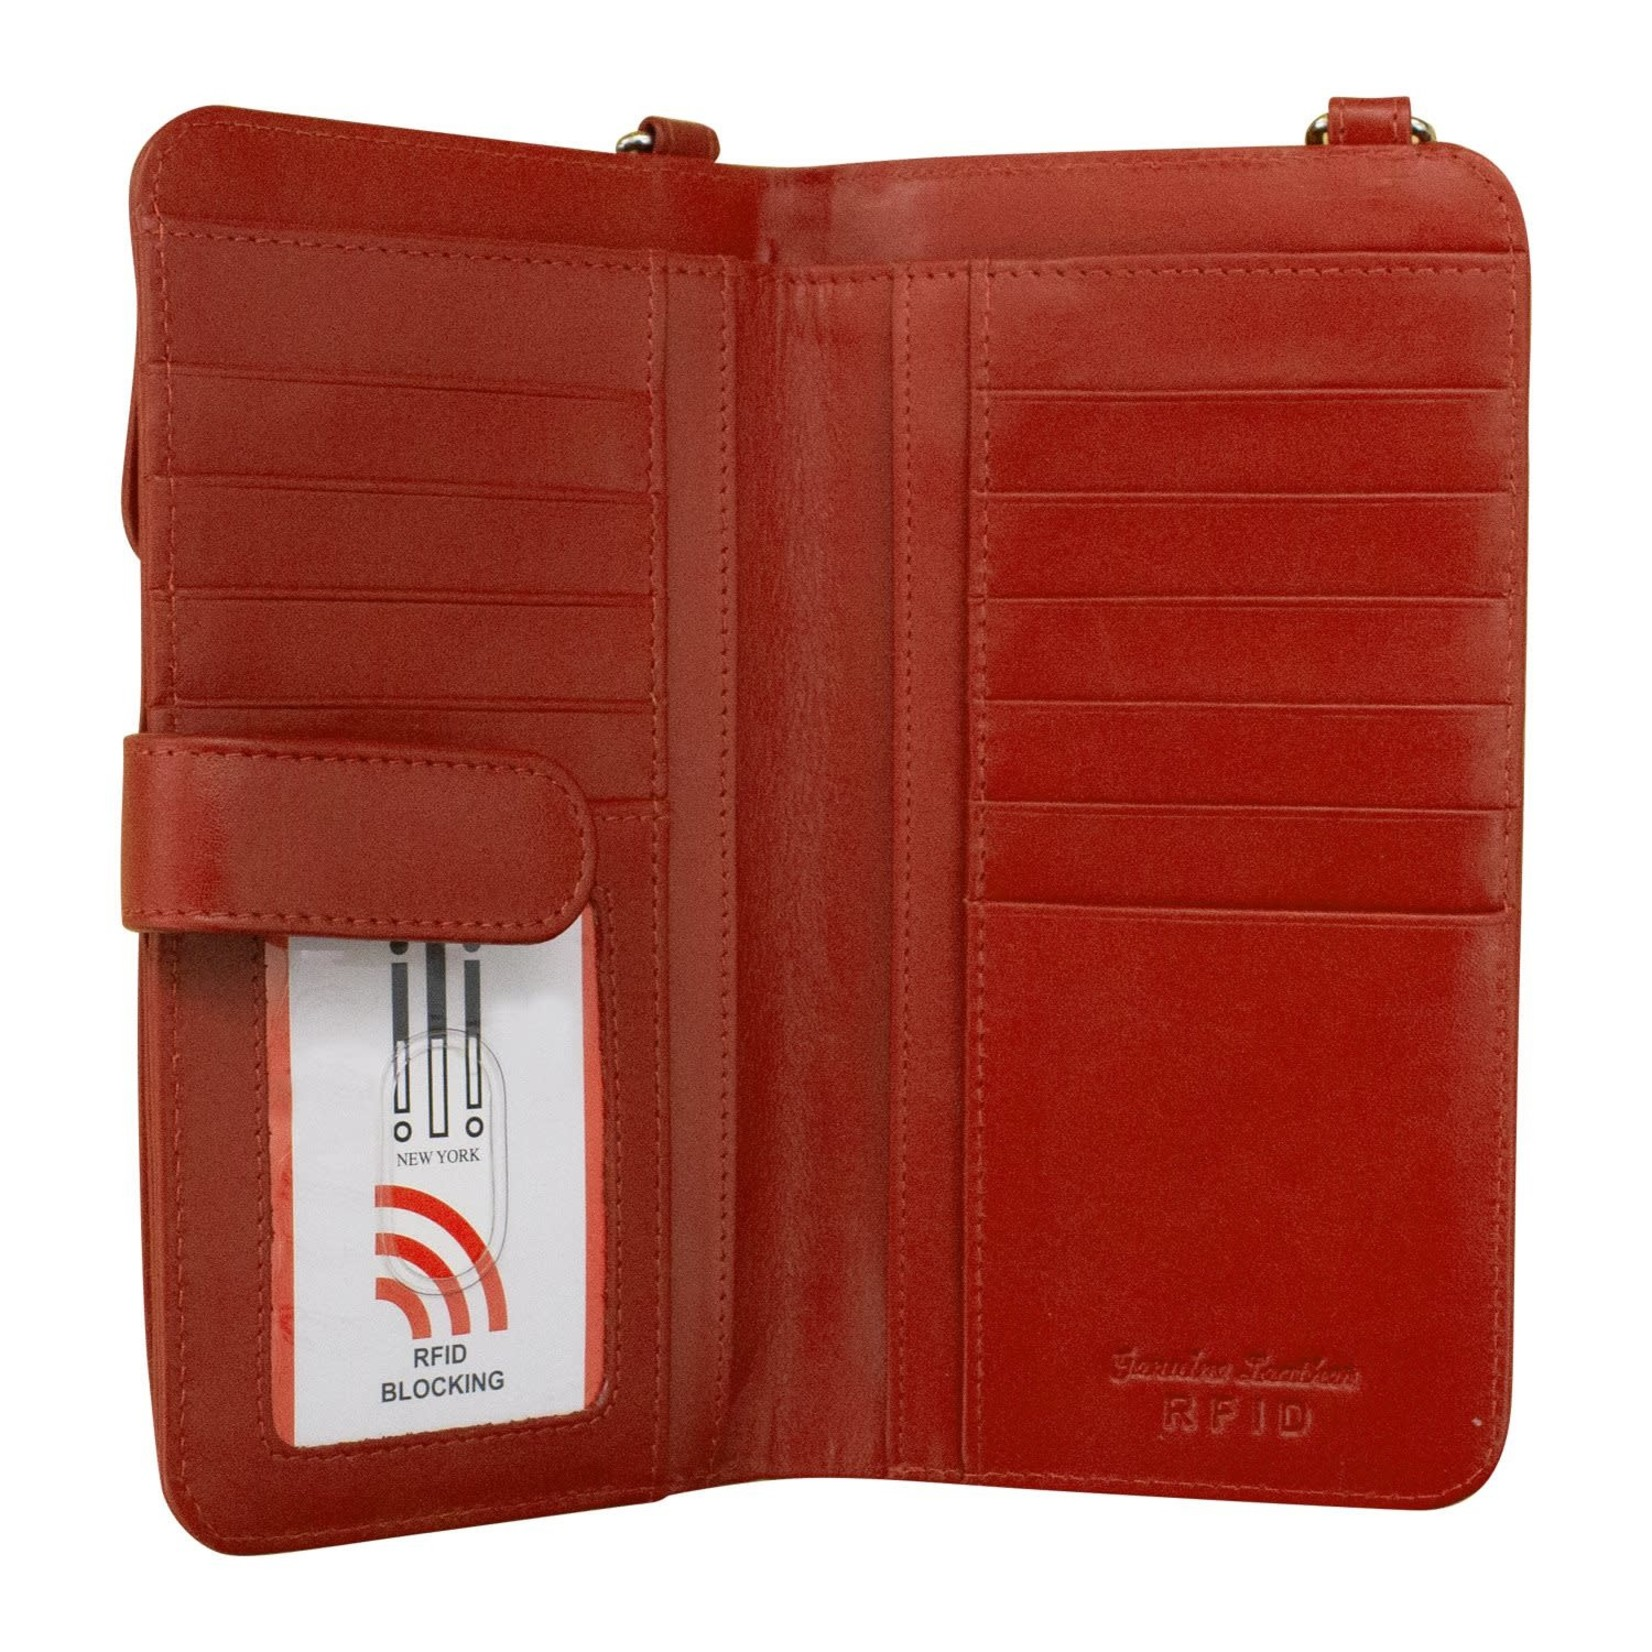 Leather Handbags and Accessories 6363 Red -  RFID Organizer Crossbody